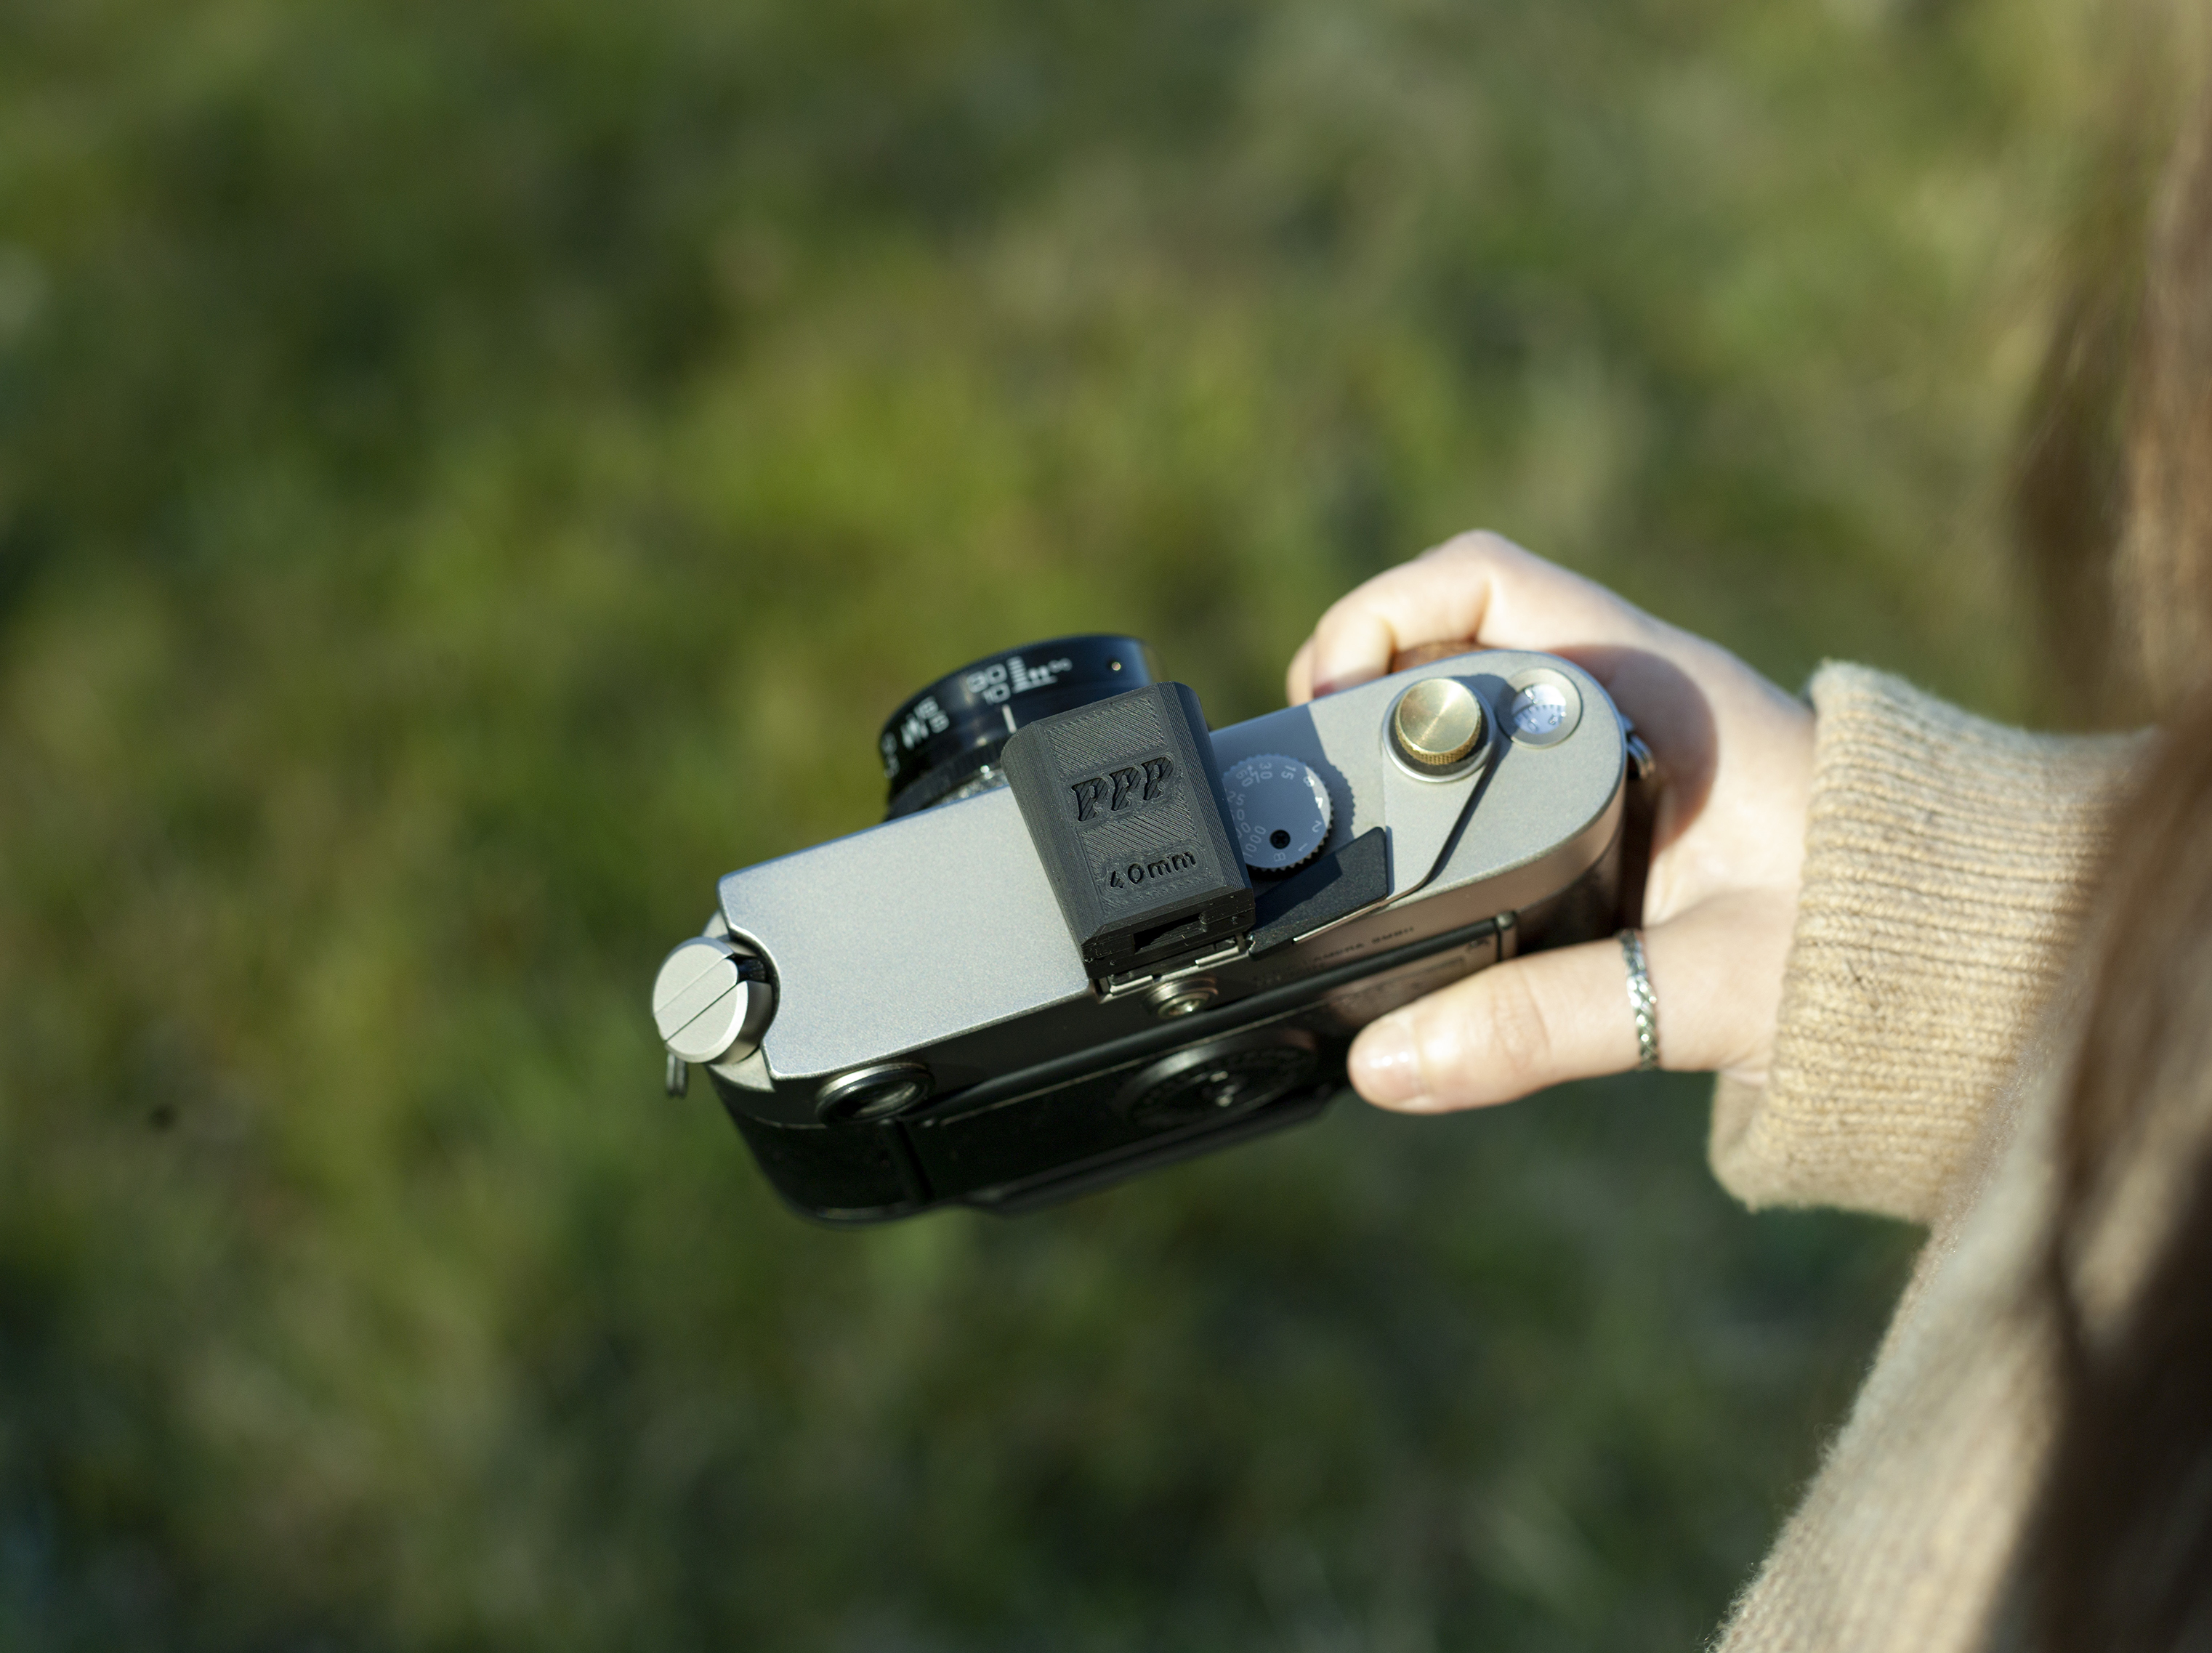 External viewfinder (Pic: PPP Cameras)